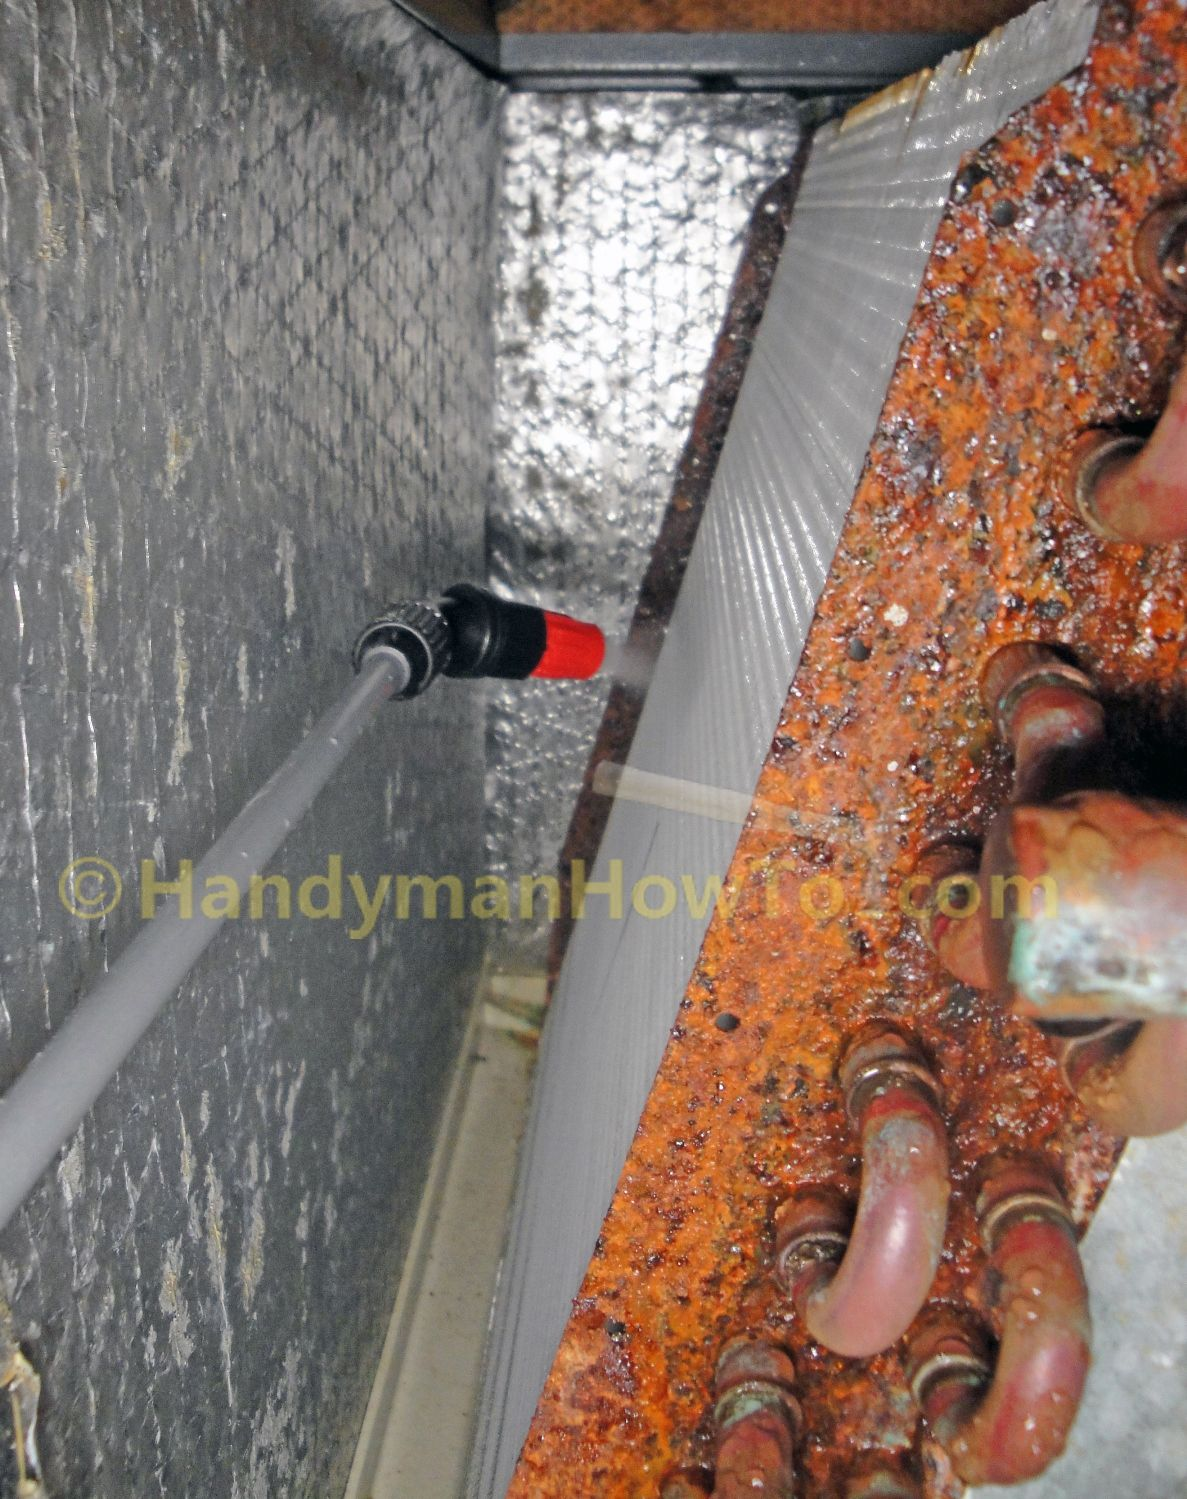 Heavy Duty Ac Evaporator Coil Cleaning With A Pump Sprayer And Commercial Detergent Used By The Pros Photos